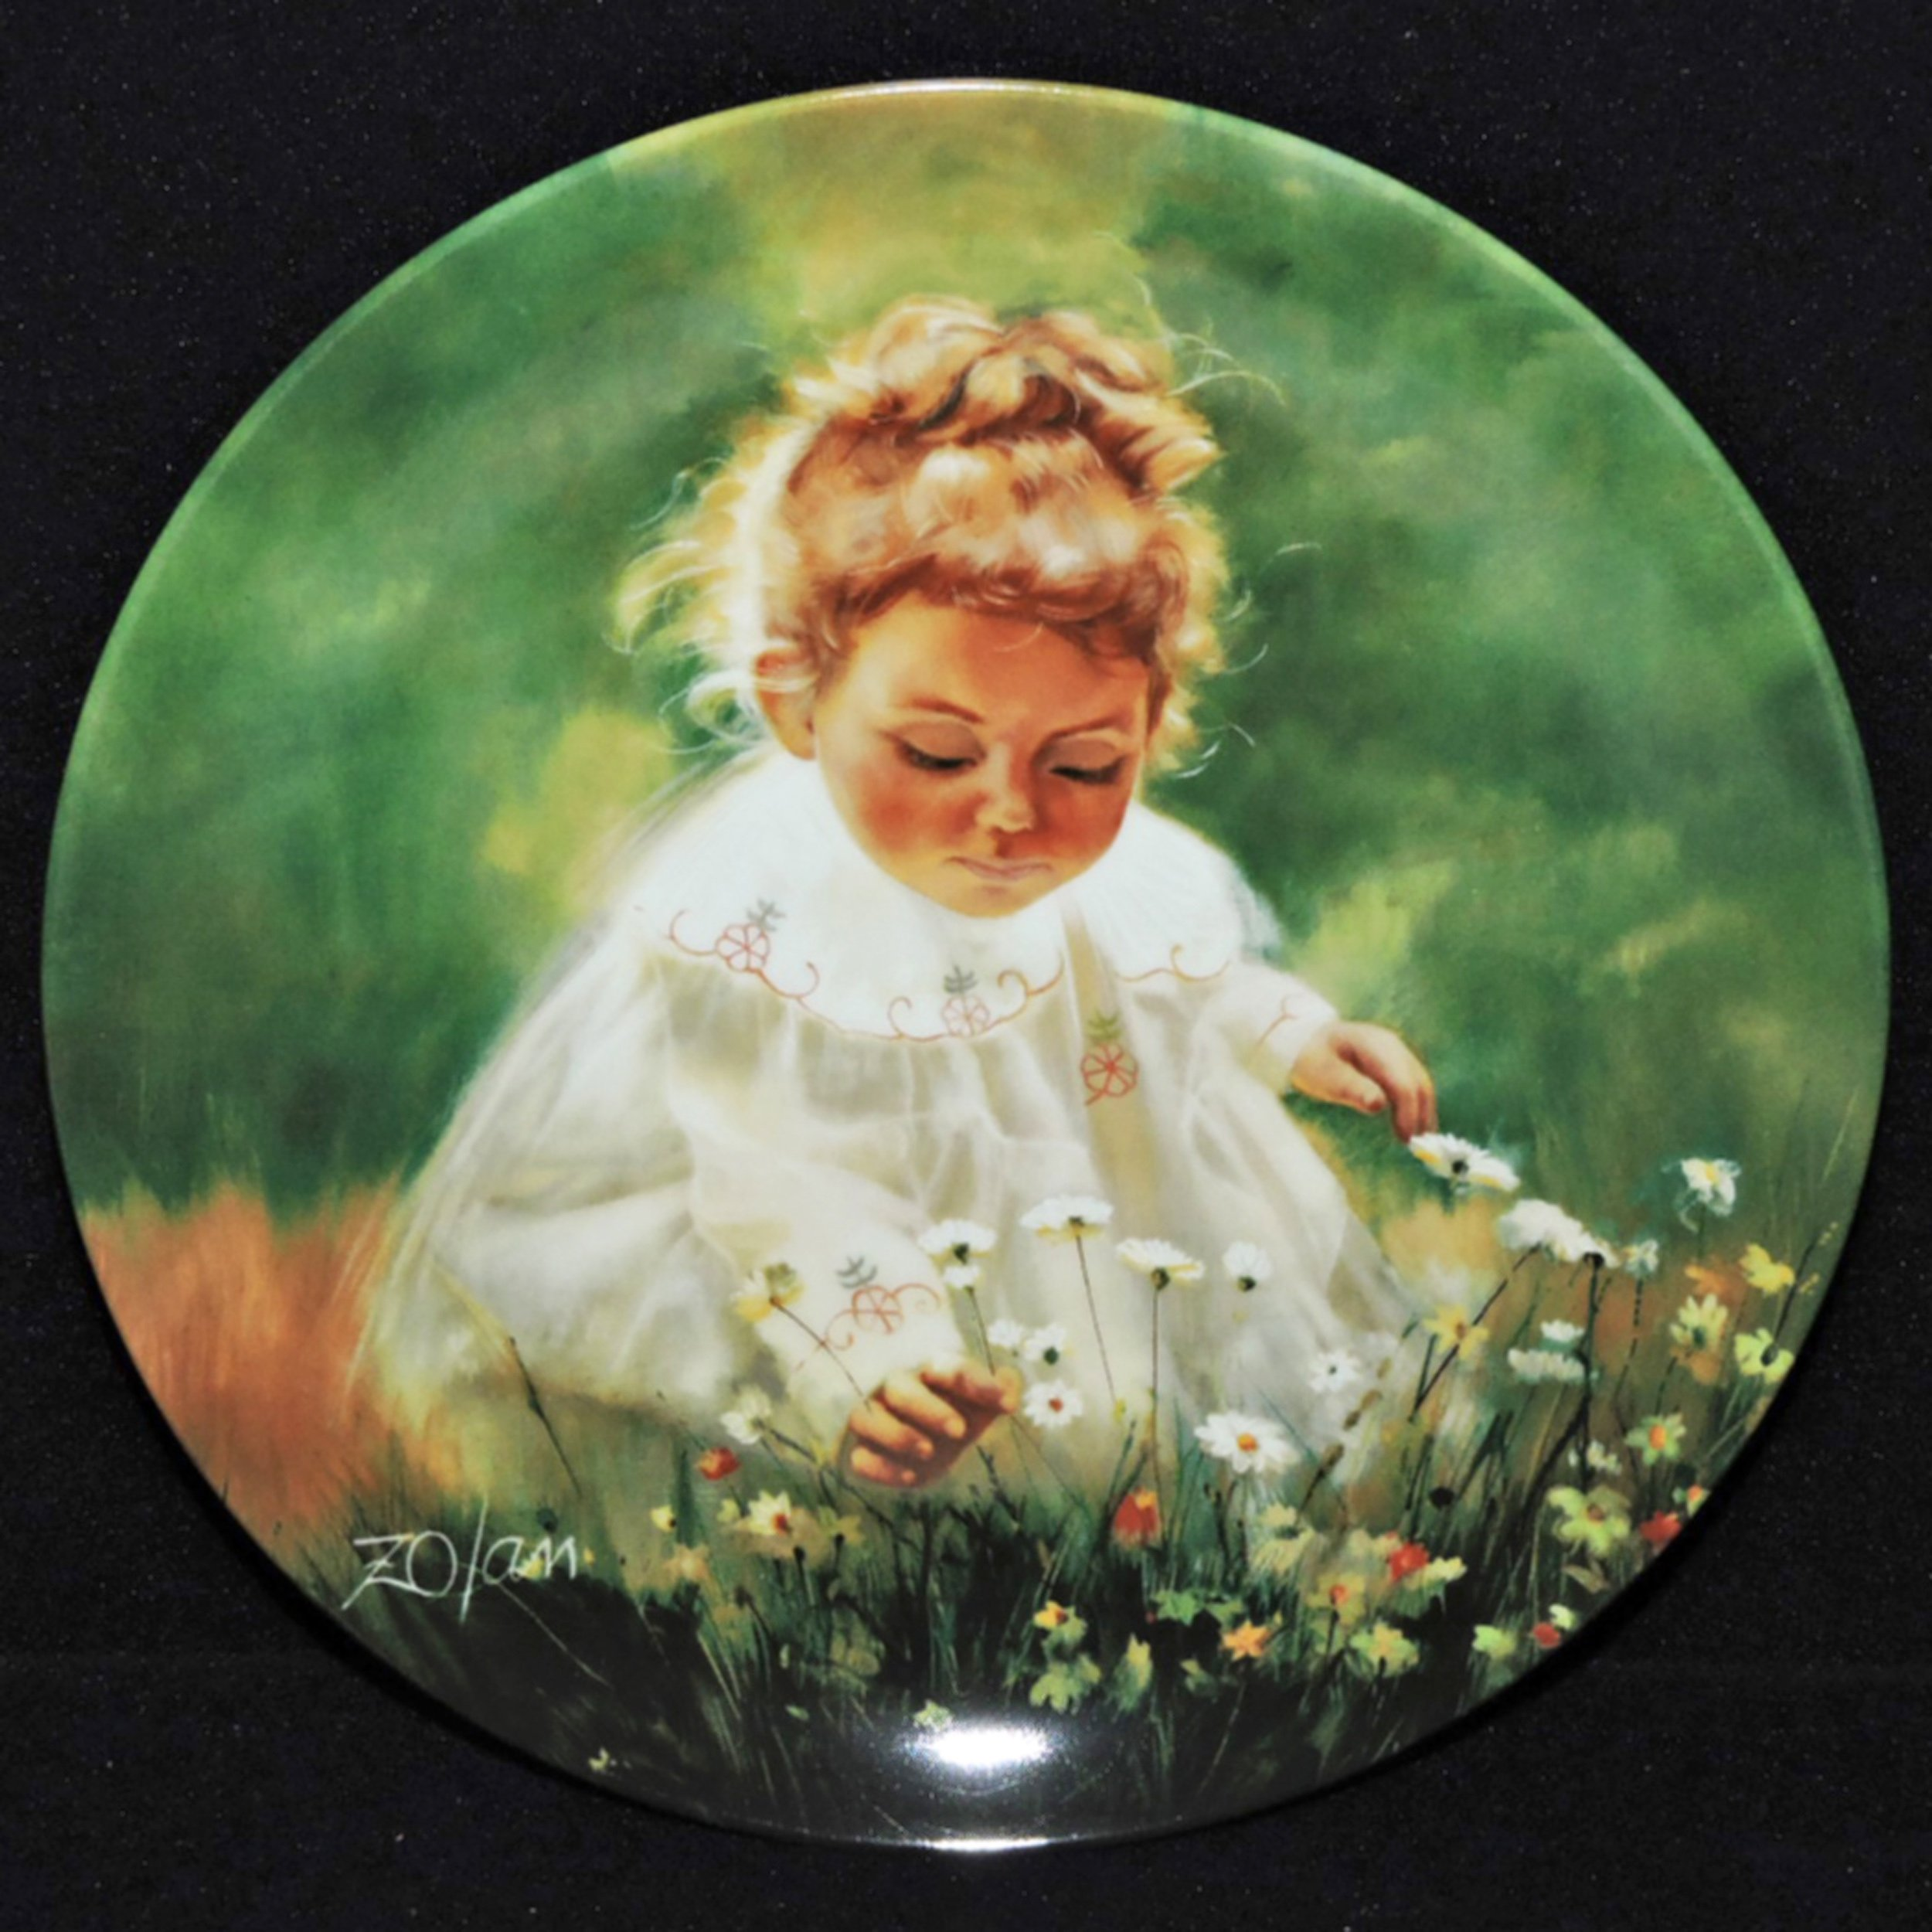 Donald Zolan Wonder of Childhood Collection Plates